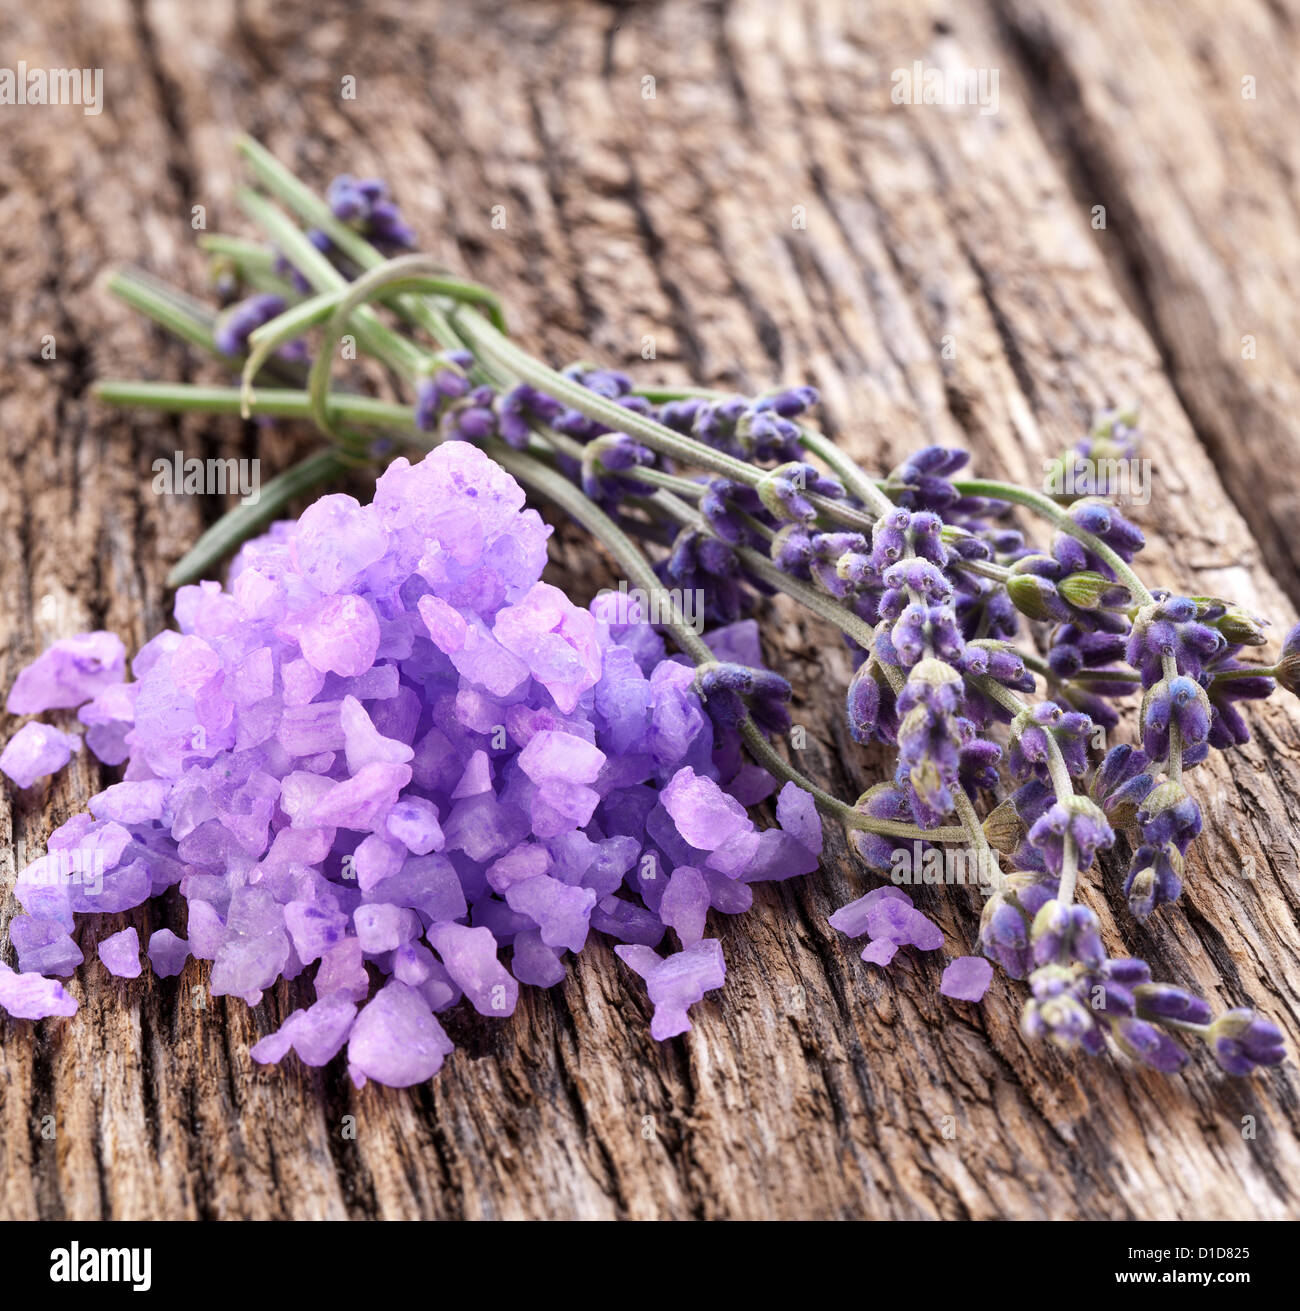 Bunch of lavender, and sea salt on a wooden table. Stock Photo